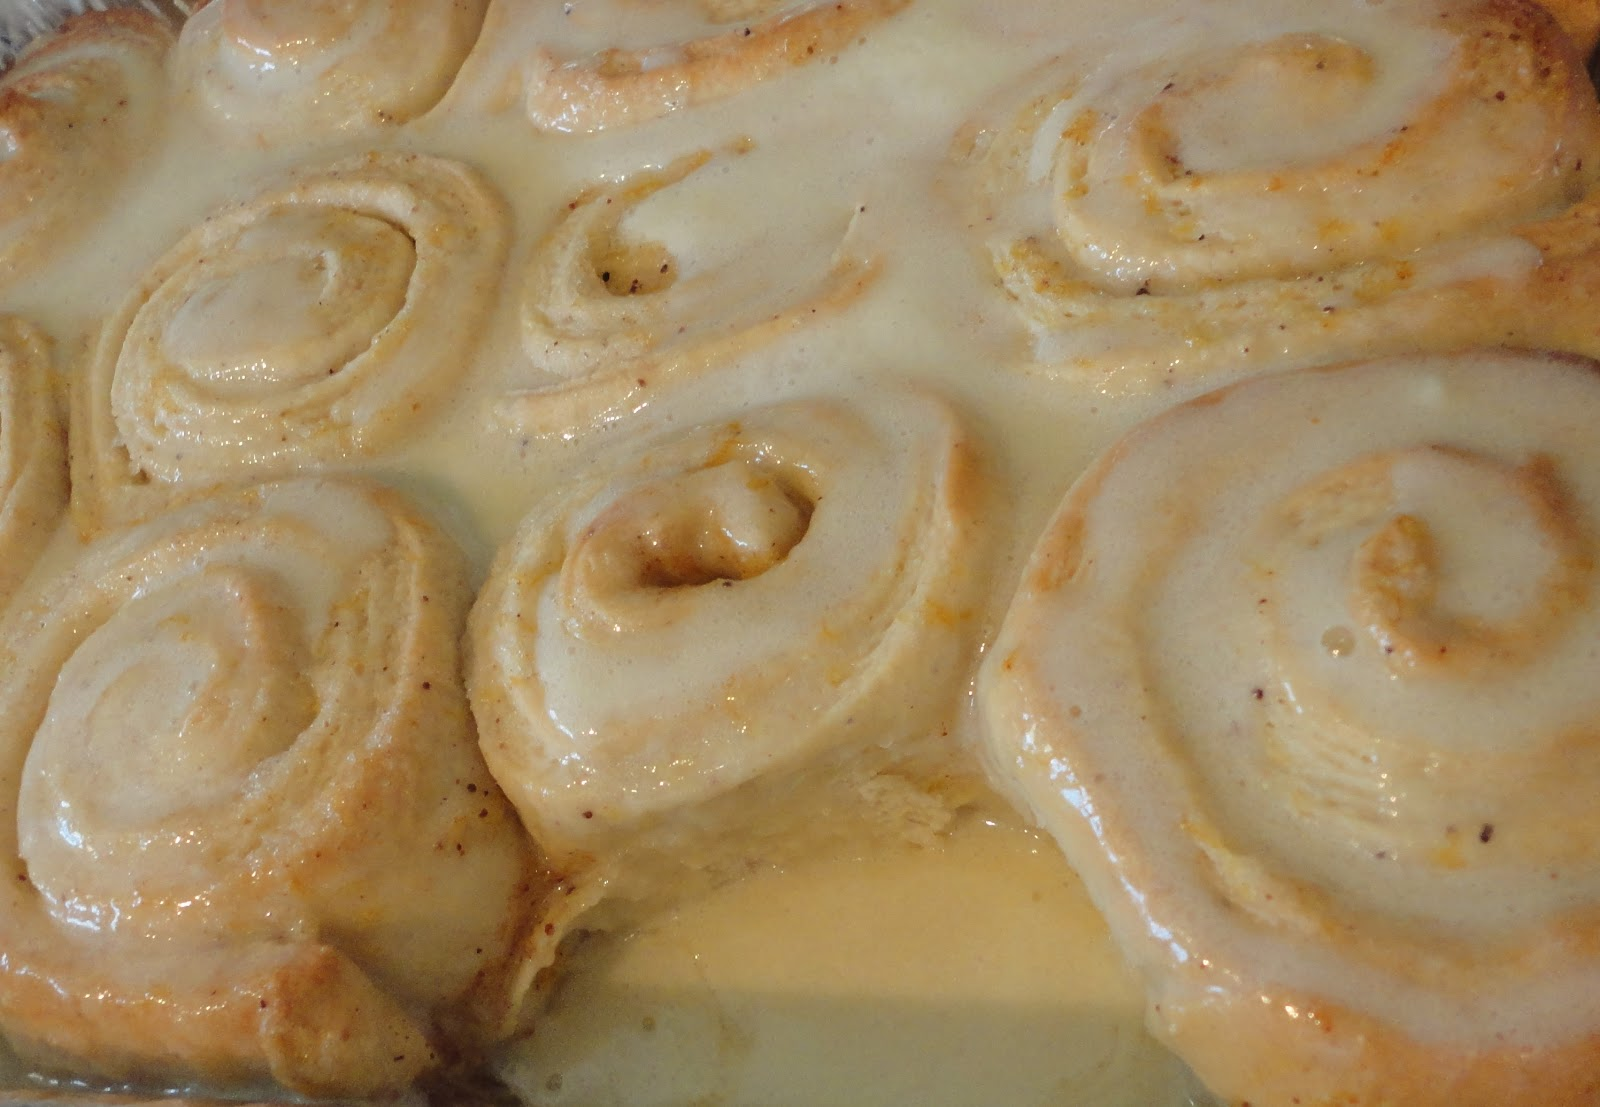 ... with Chilean flavor: Sticky Lemon Rolls with Lemon Cream Cheese Glaze